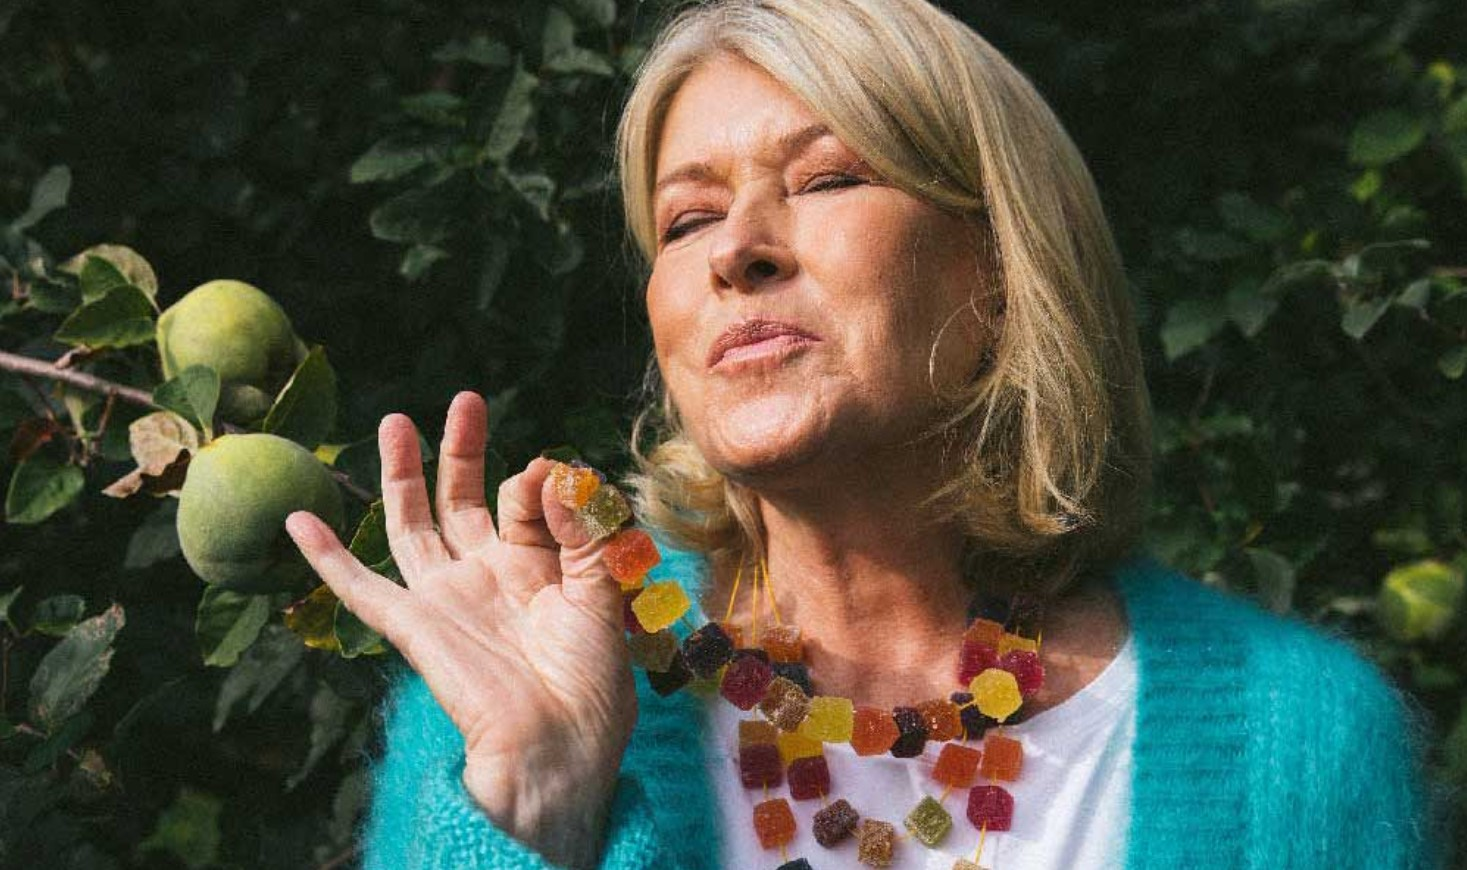 Save up to 30% on Martha Stewart CBD and more. Details below.